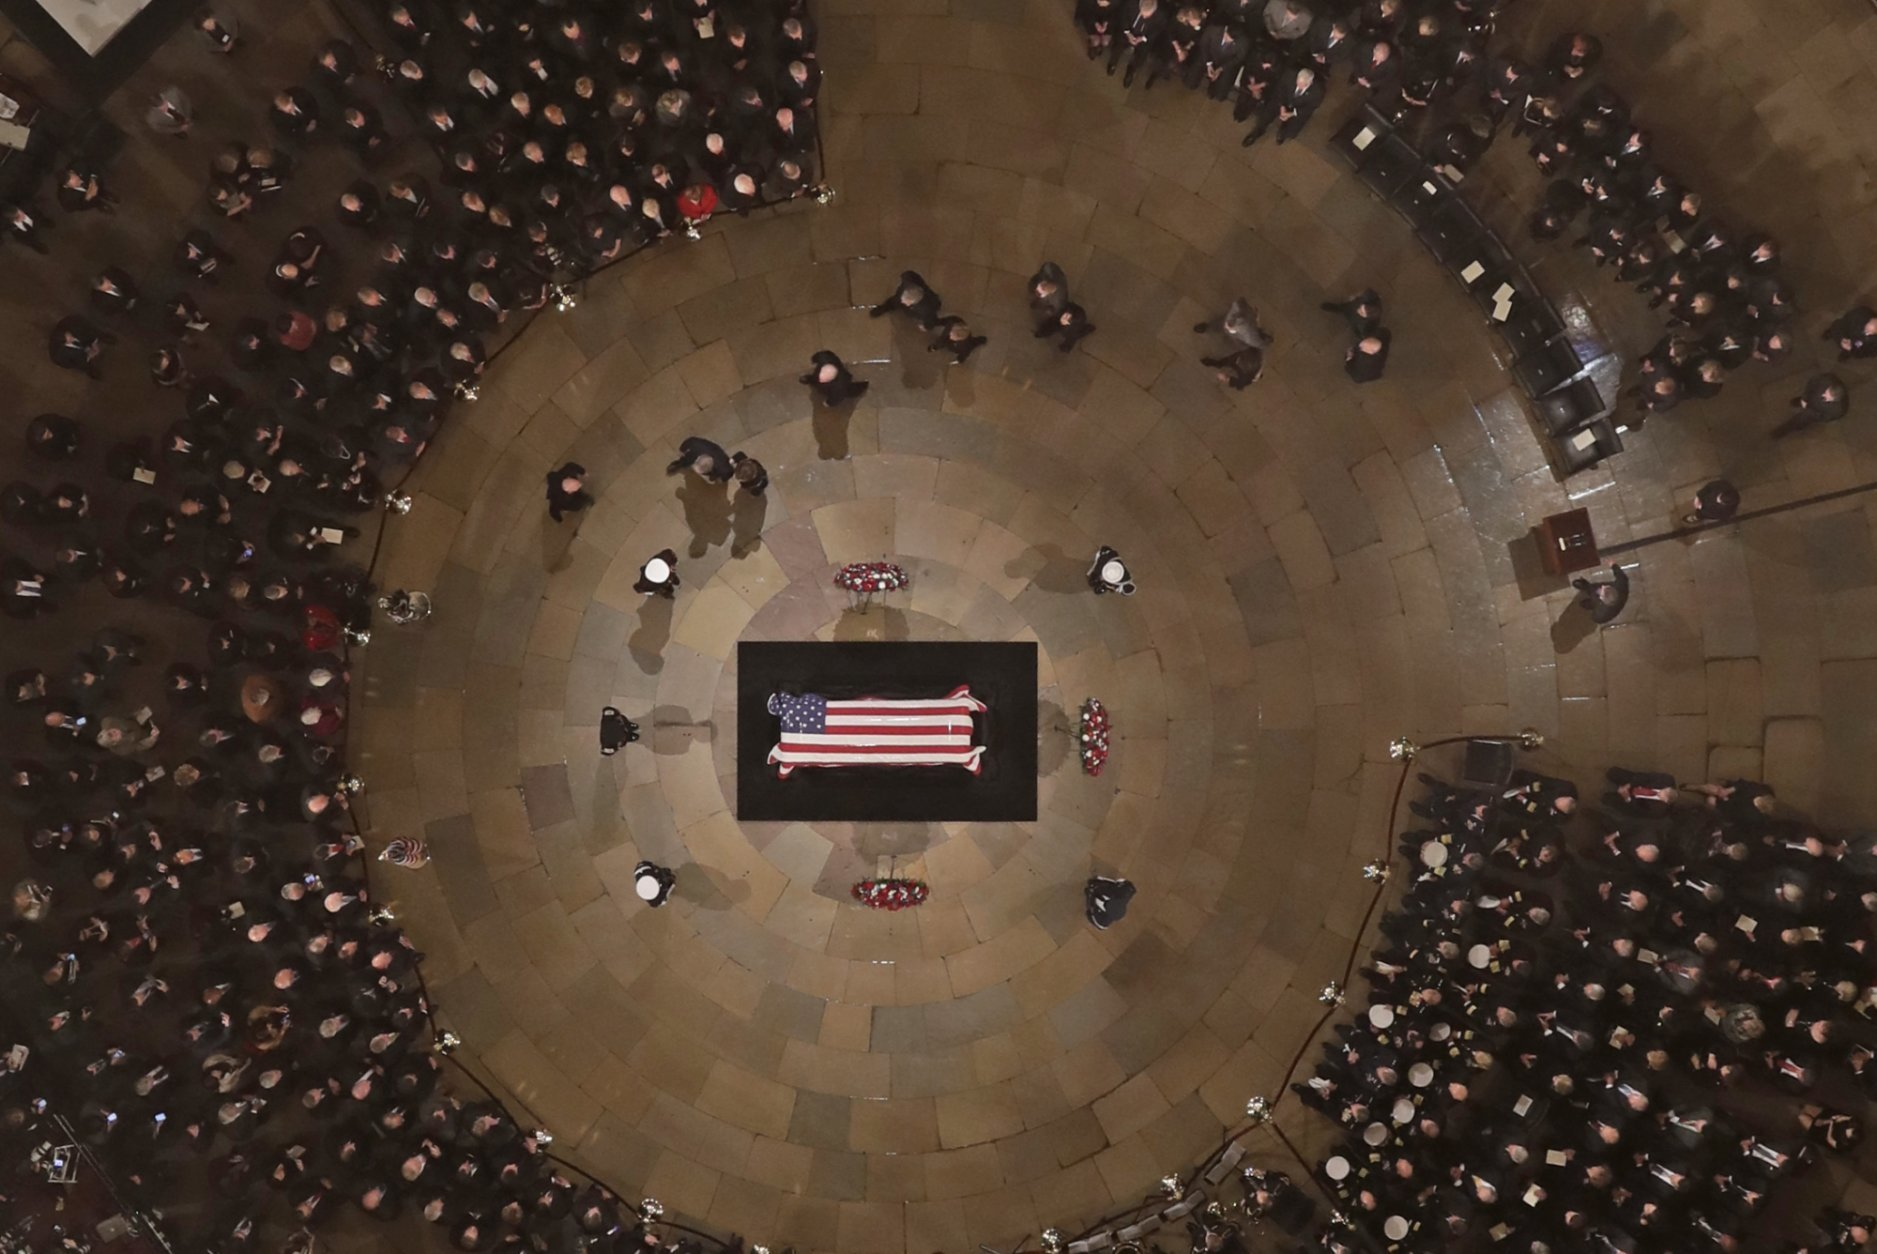 Members of the Bush family walks past as former President George H. W. Bush lies in state in the U.S. Capitol Rotunda Monday, Dec. 3, 2018, in Washington. (Pool photo by Morry Gash via AP)